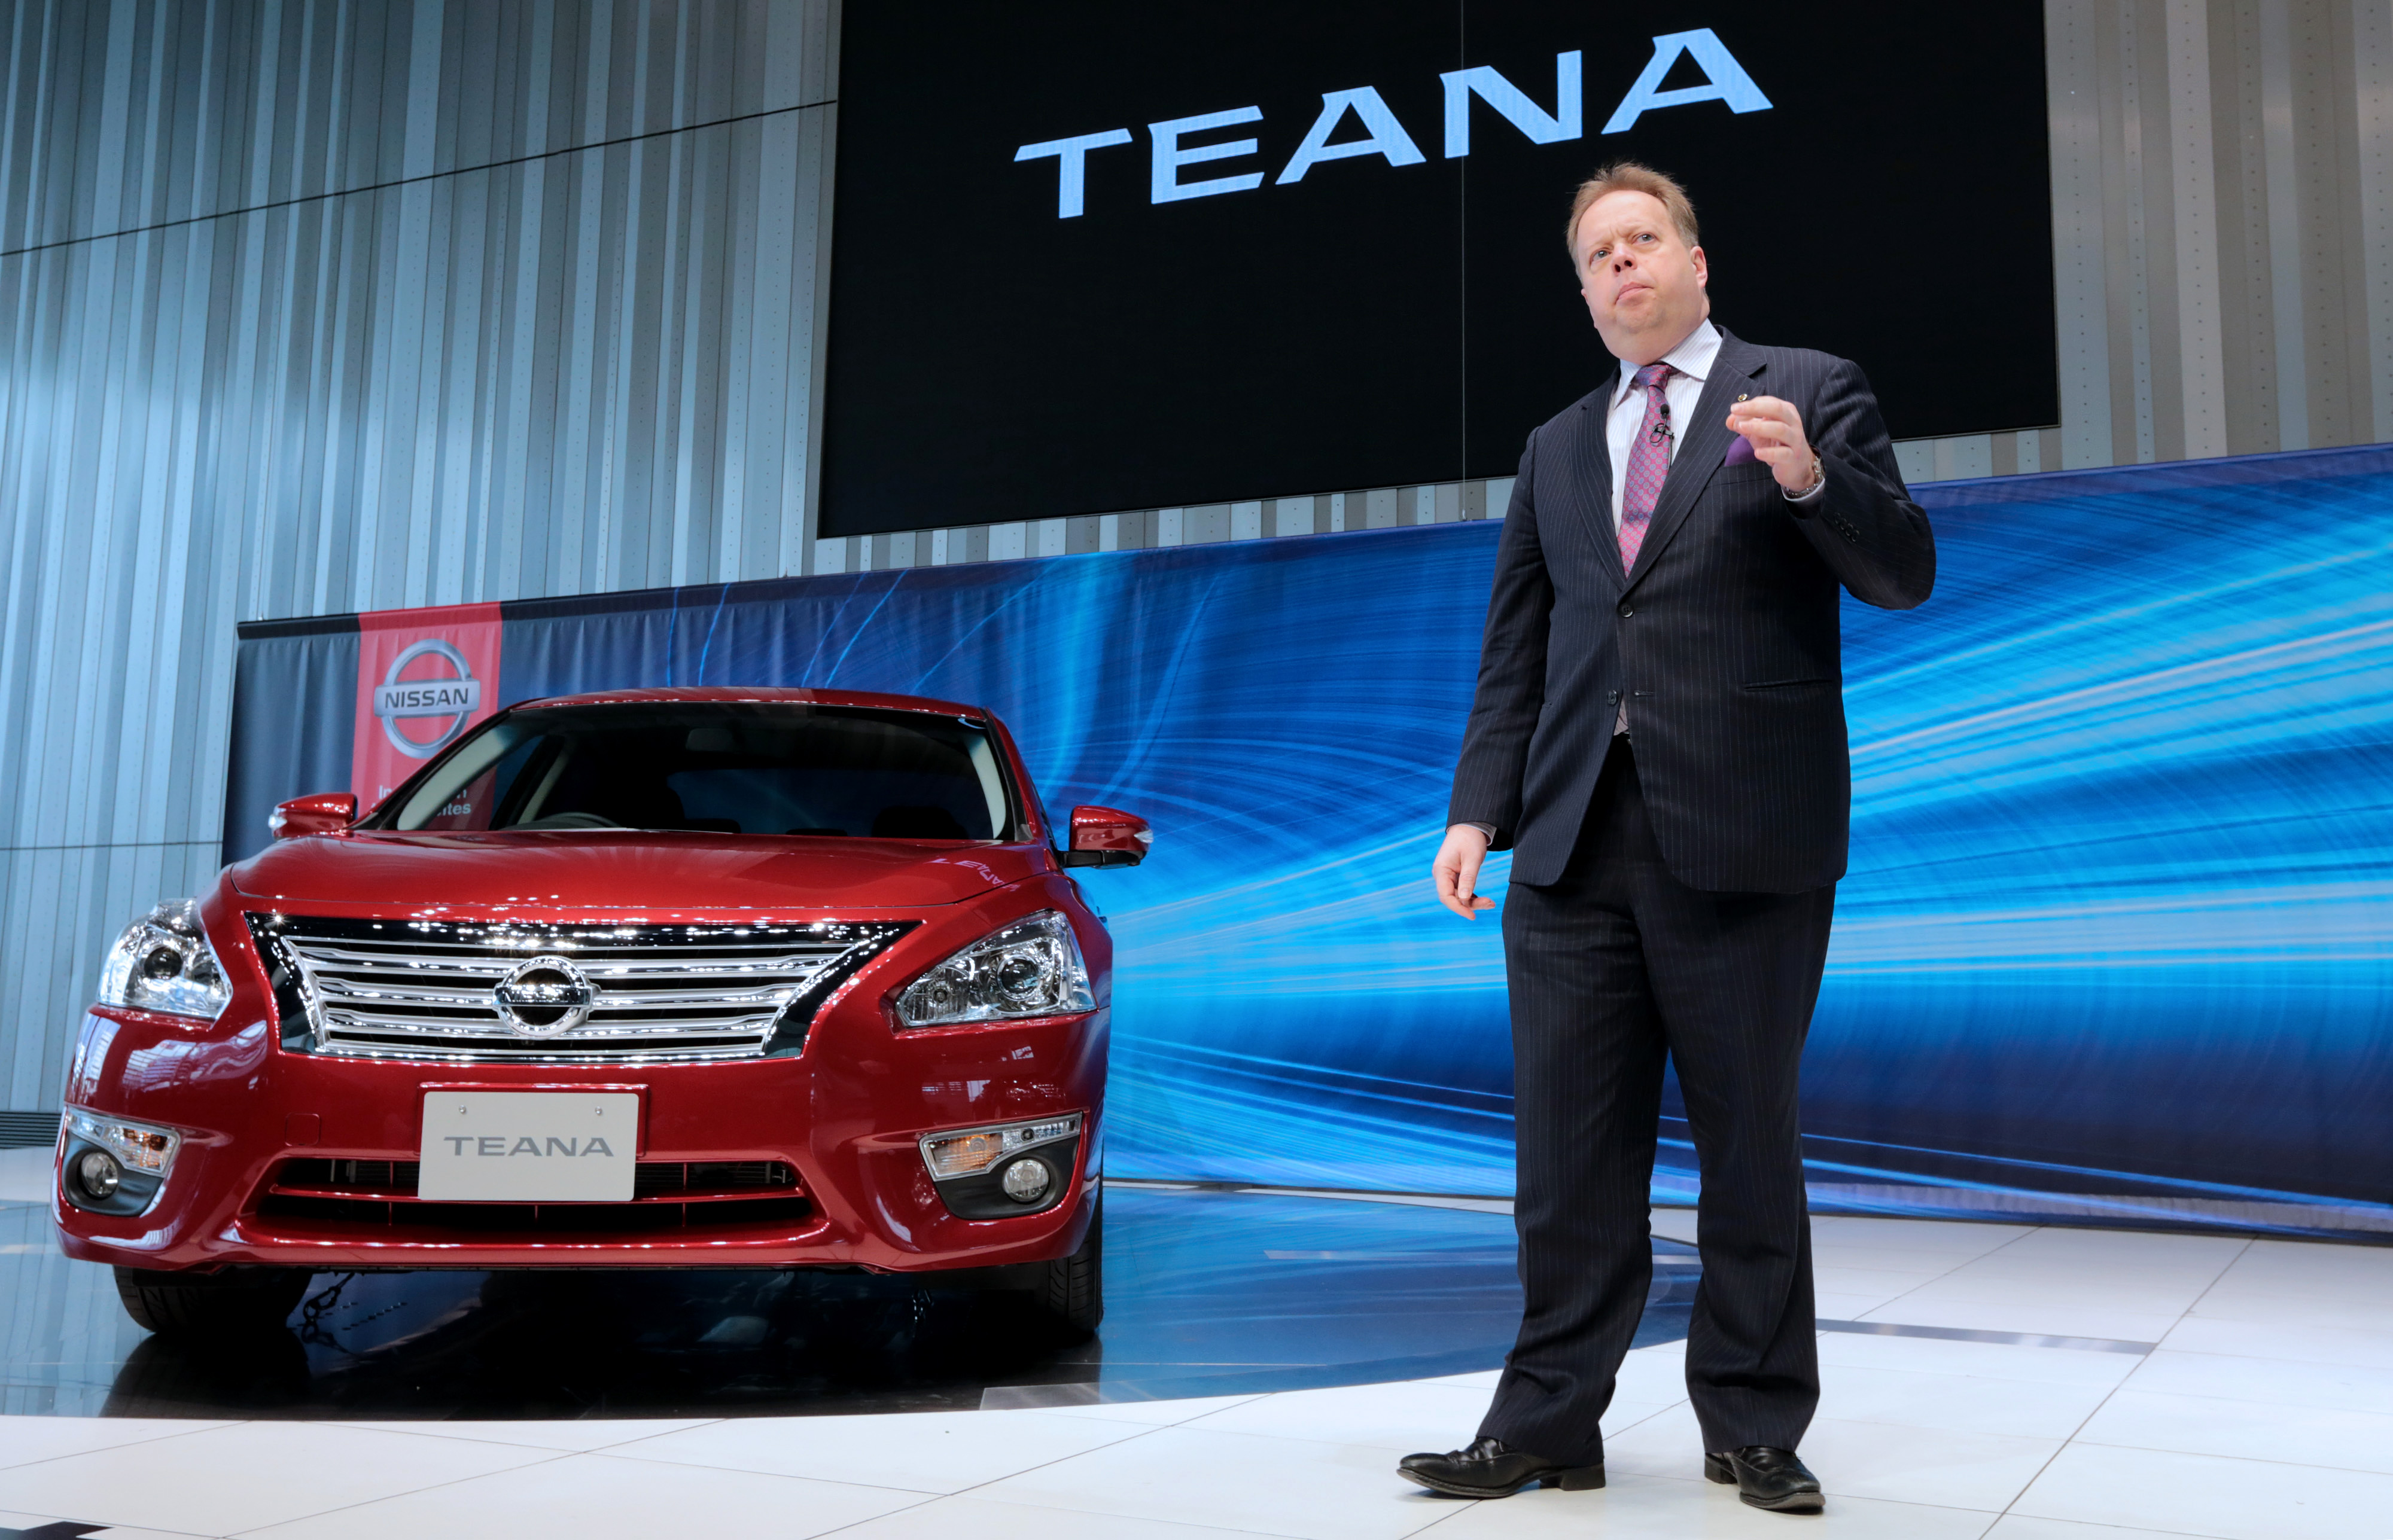 Nissan Vice President Andy Palmer Attends Redesigned Teana Launch